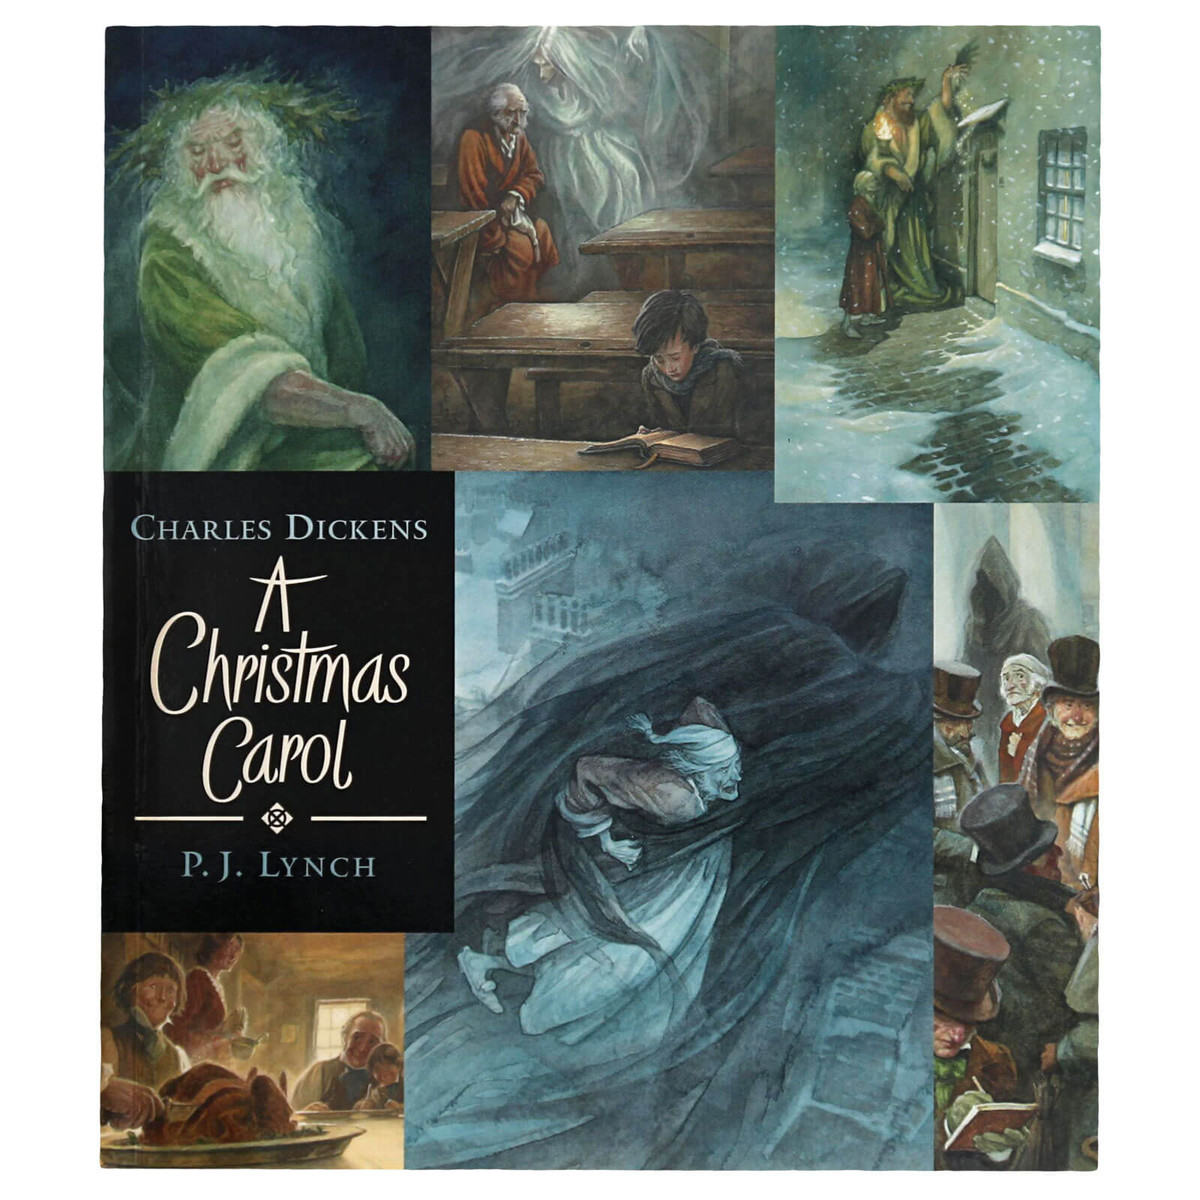 A Christmas Carol Written By Charles Dickens and Illustrated By P.J. Lynch